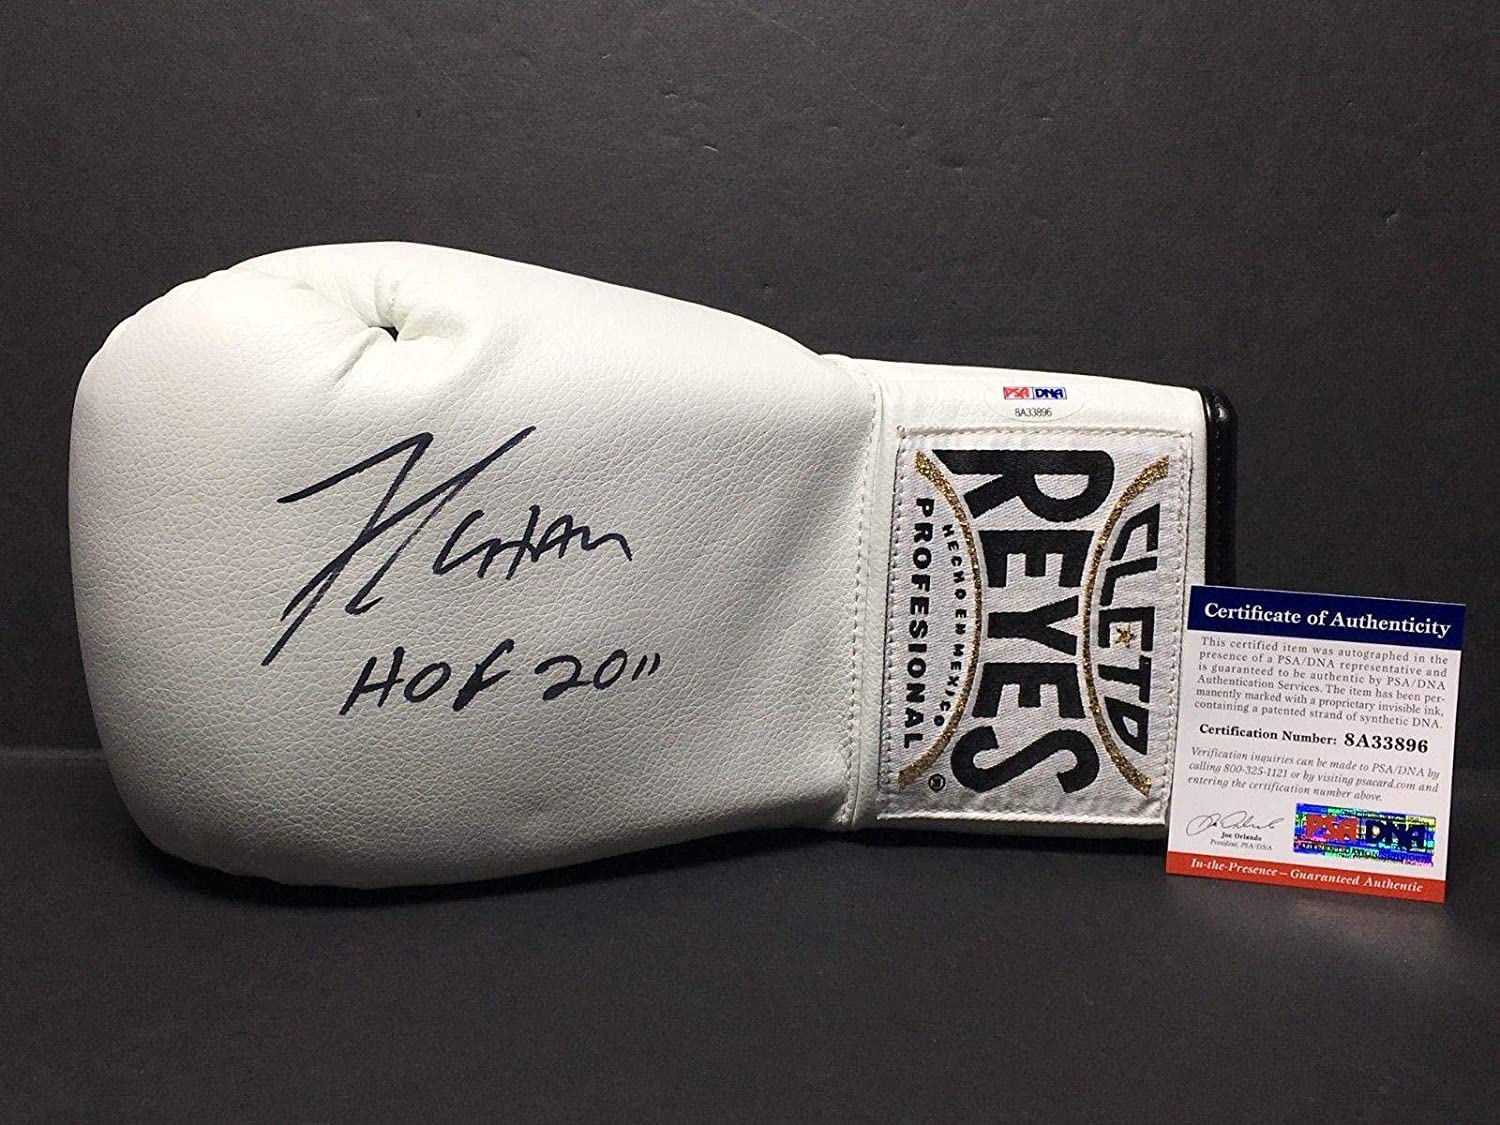 Julio Cesar Chavez Signed White Cleto Reyes Boxing GloveHOF 2011 8A33896 - PSA/DNA Certified - Autographed Boxing Gloves